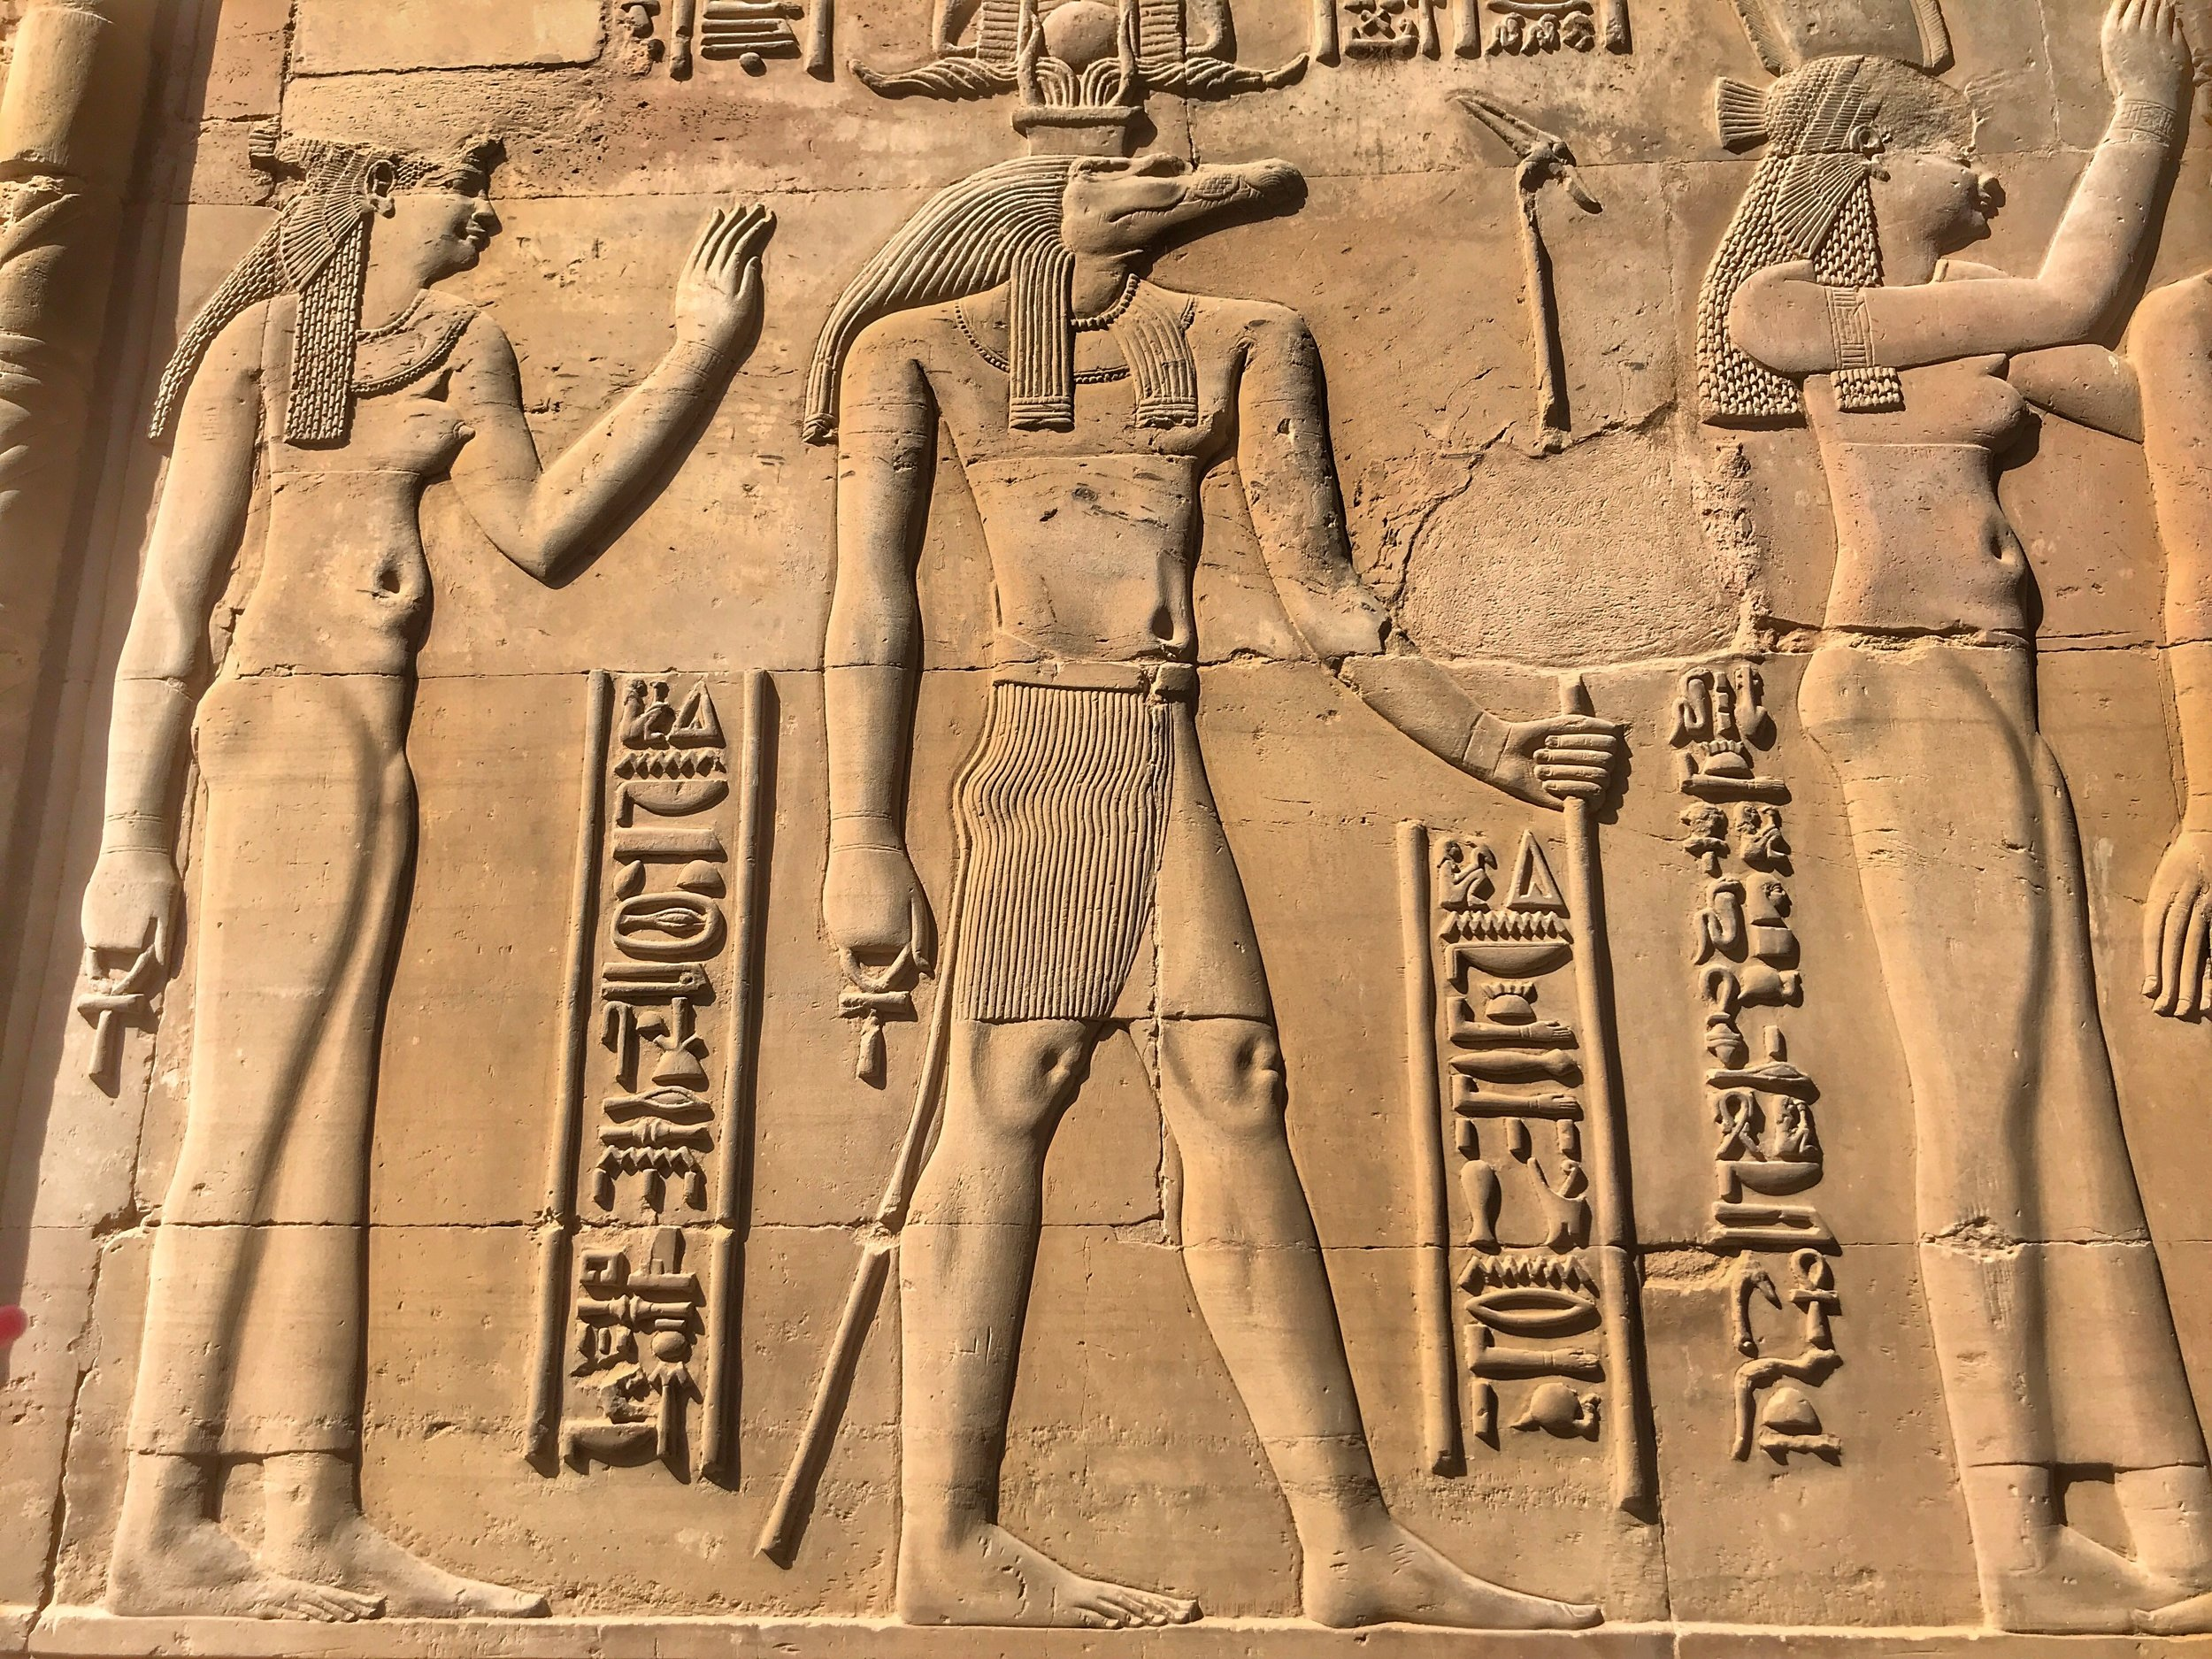 Crocodile-headed Sobek, seen in the middle, is a complicated god of water and fertility